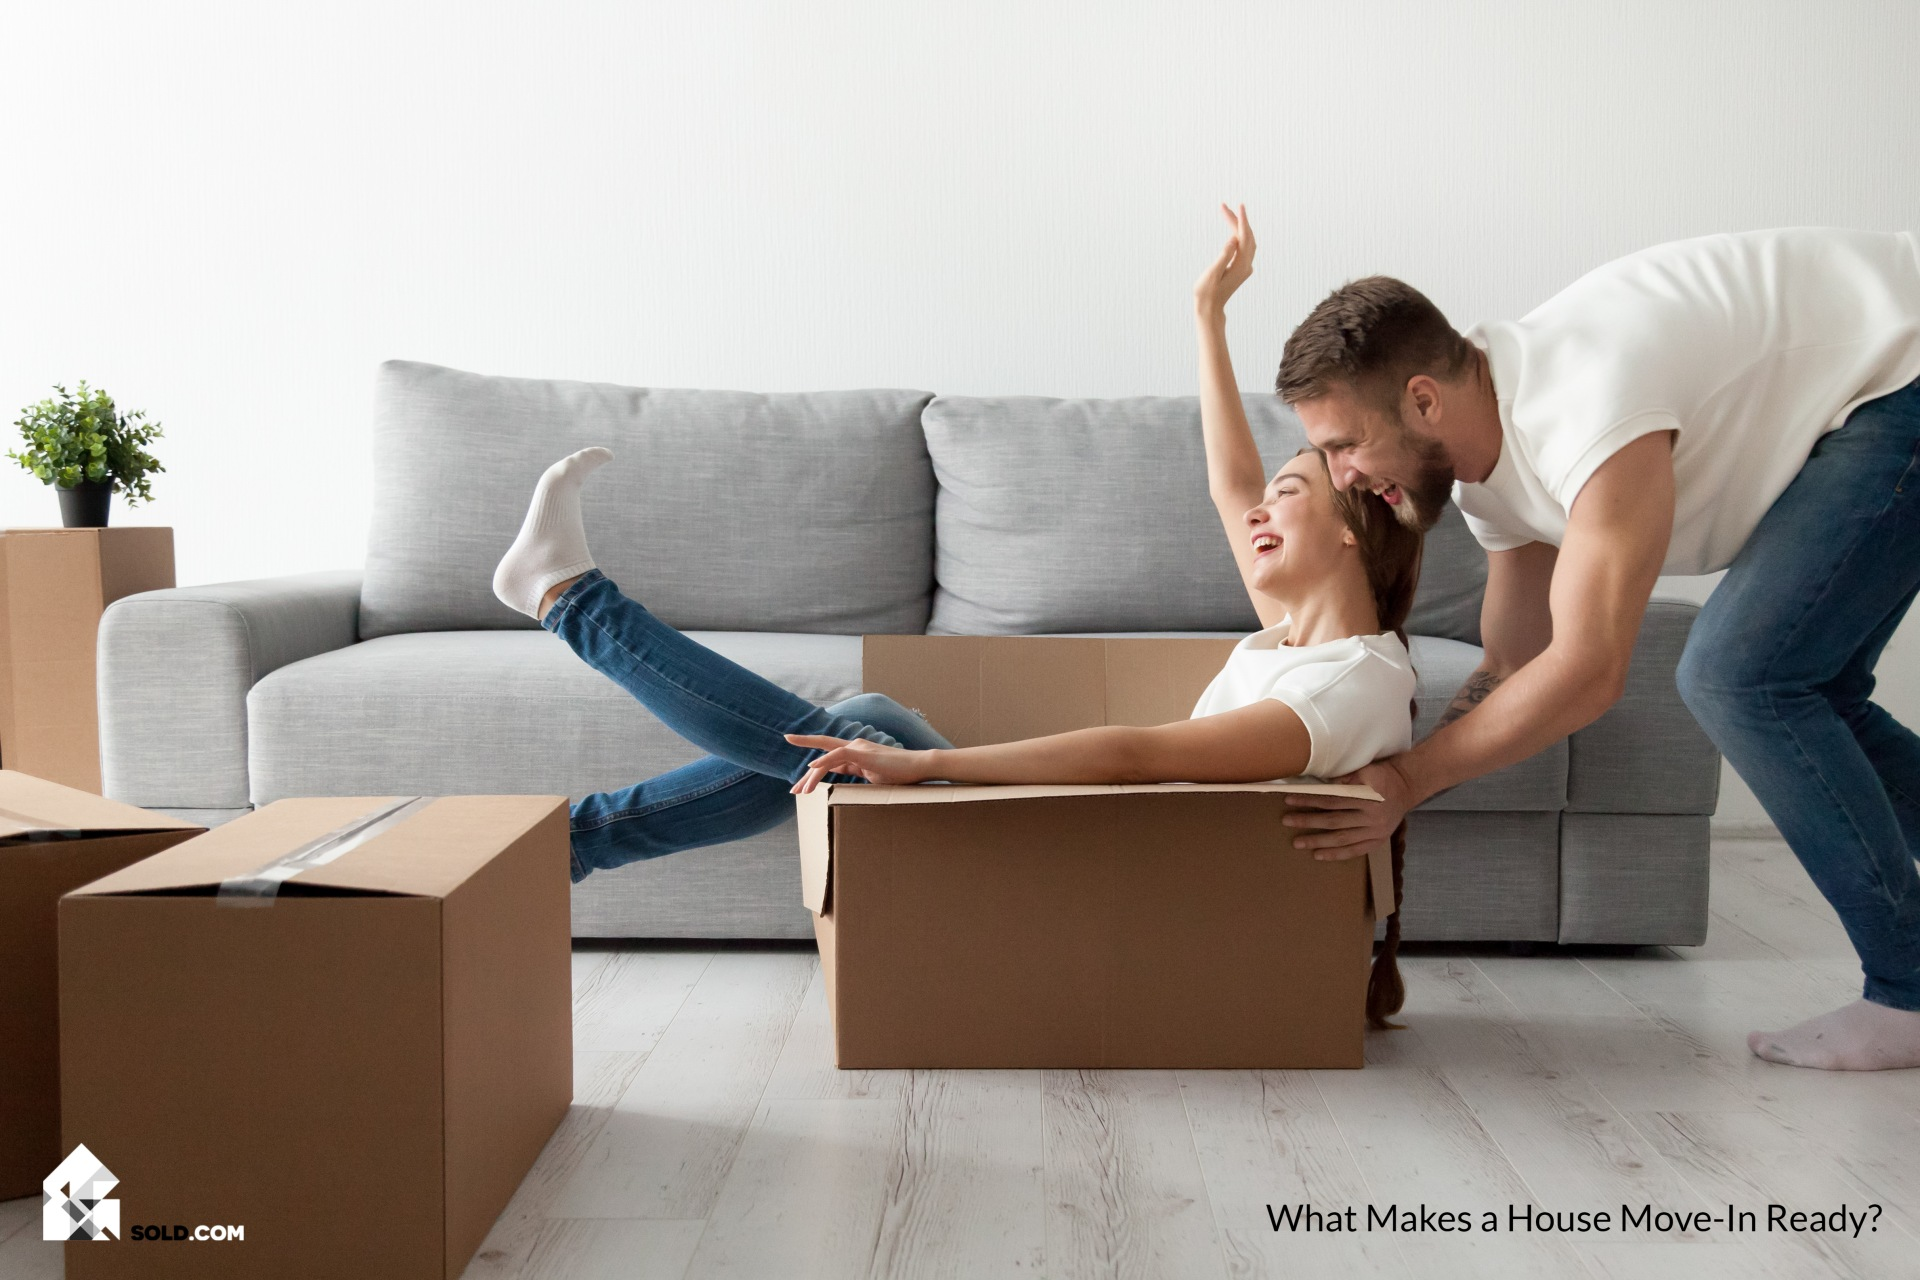 What Makes a House Move-in Ready?